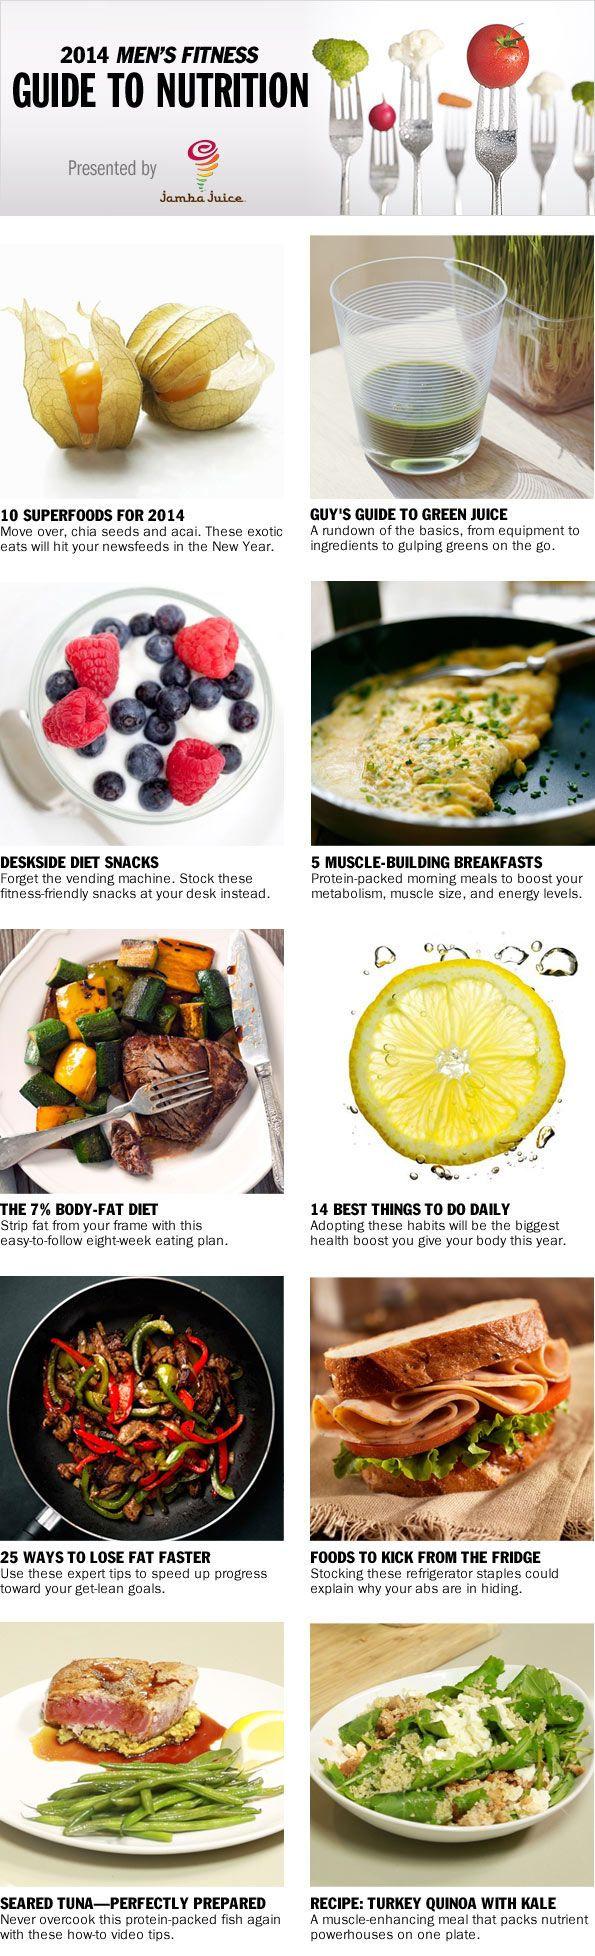 The 2014 Men's #Fitness Guide to Nutrition - Men's Fitness.  Visit our Facebook Page at https://www.facebook.com/ChooseWellness